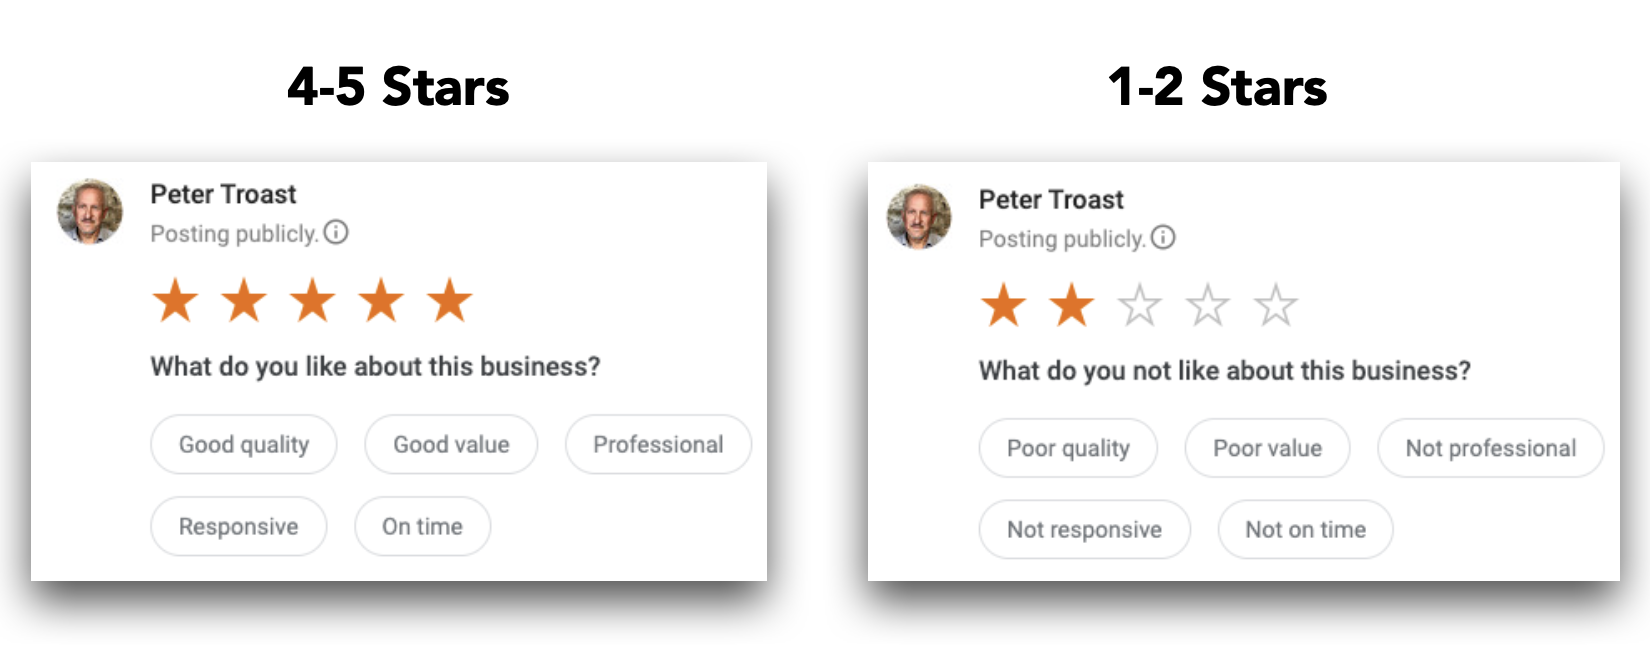 example of Google review attributes for both positive and negative reviews